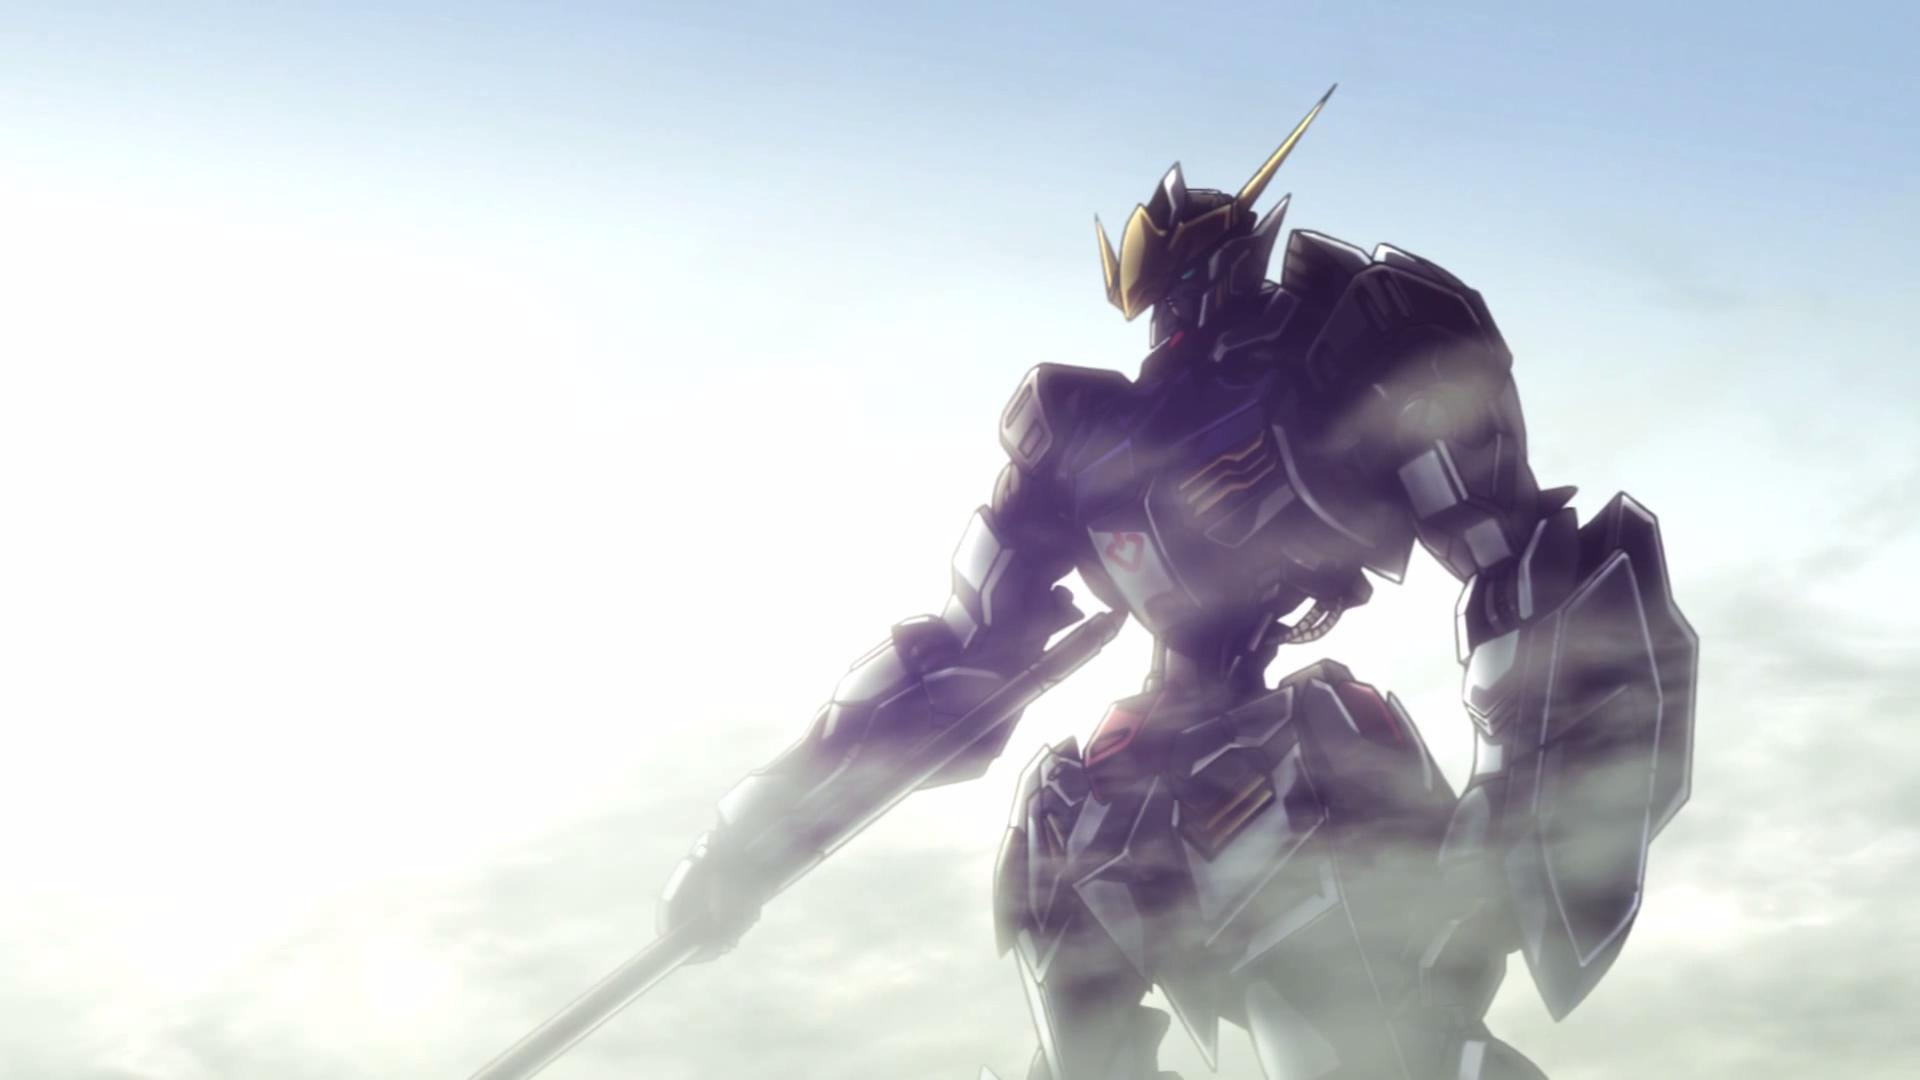 Gundam Iron blooded